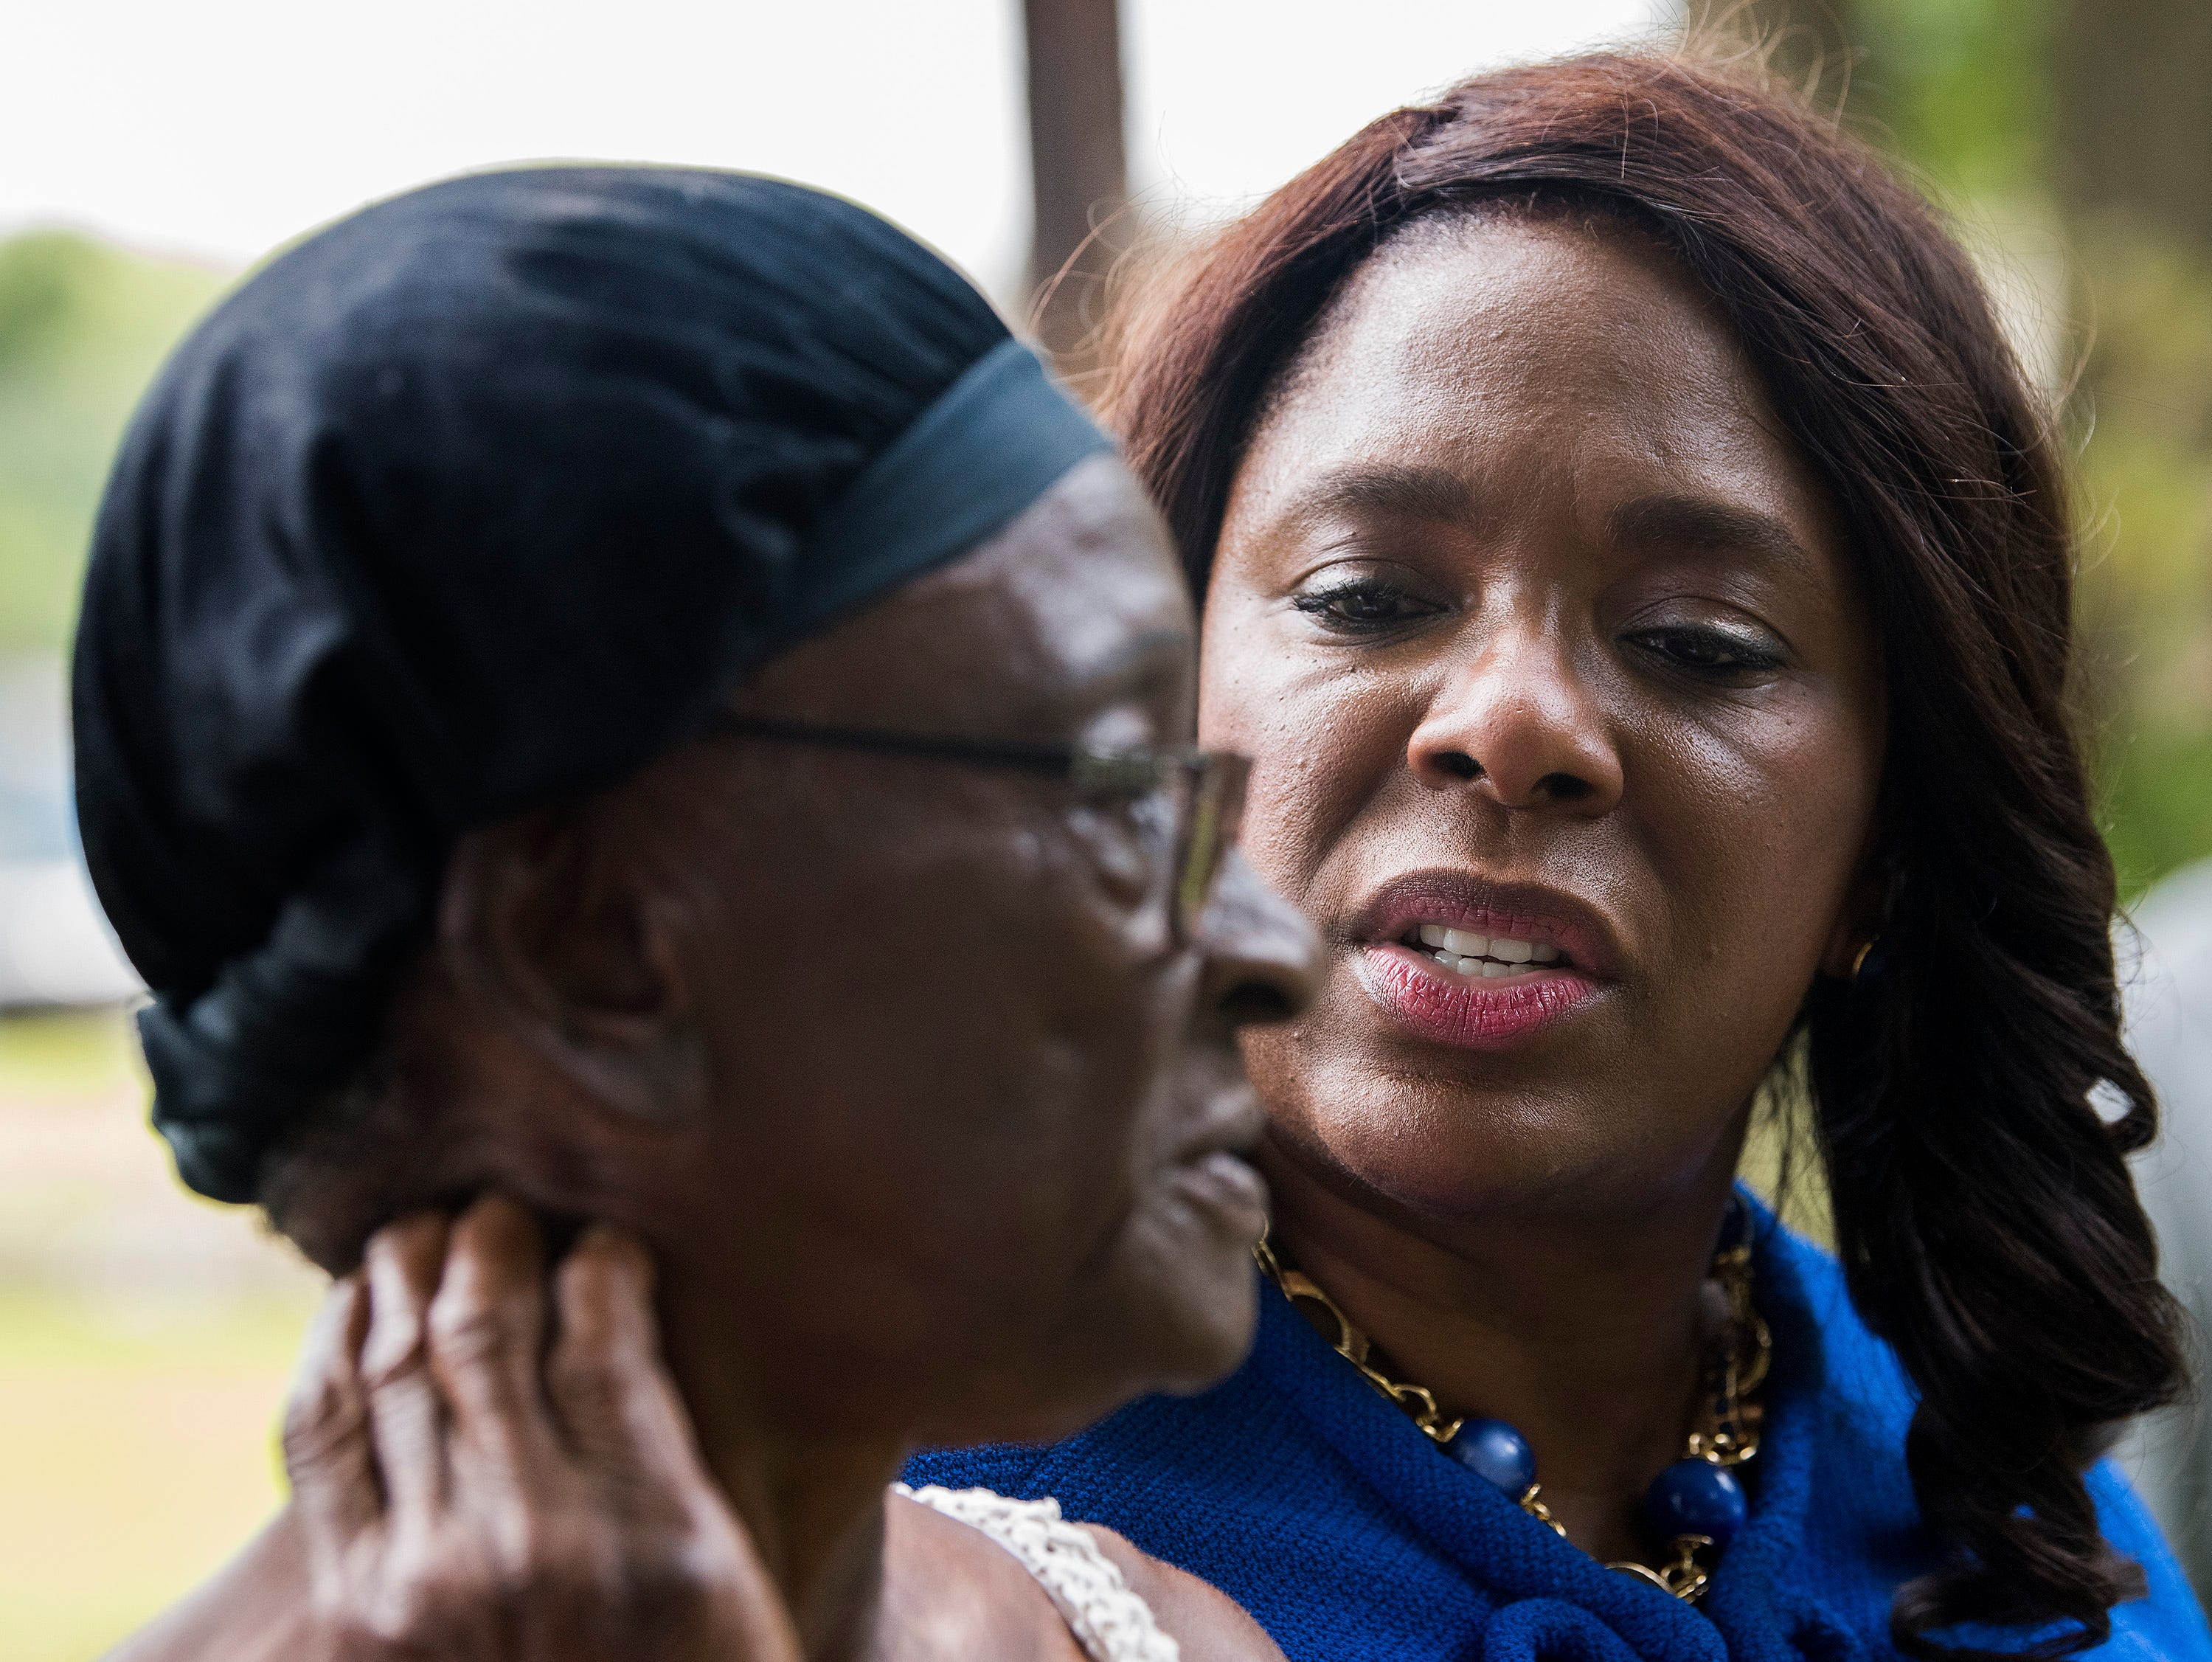 Congresswomen Terri Sewell talks with homeowner Willie Mae Spivey, who recentley get a new free septic tank, as Sewell takes a group of engineering and health experts to homes with sewage problems in Lowndes County, Ala., on Monday, July 30, 2018.